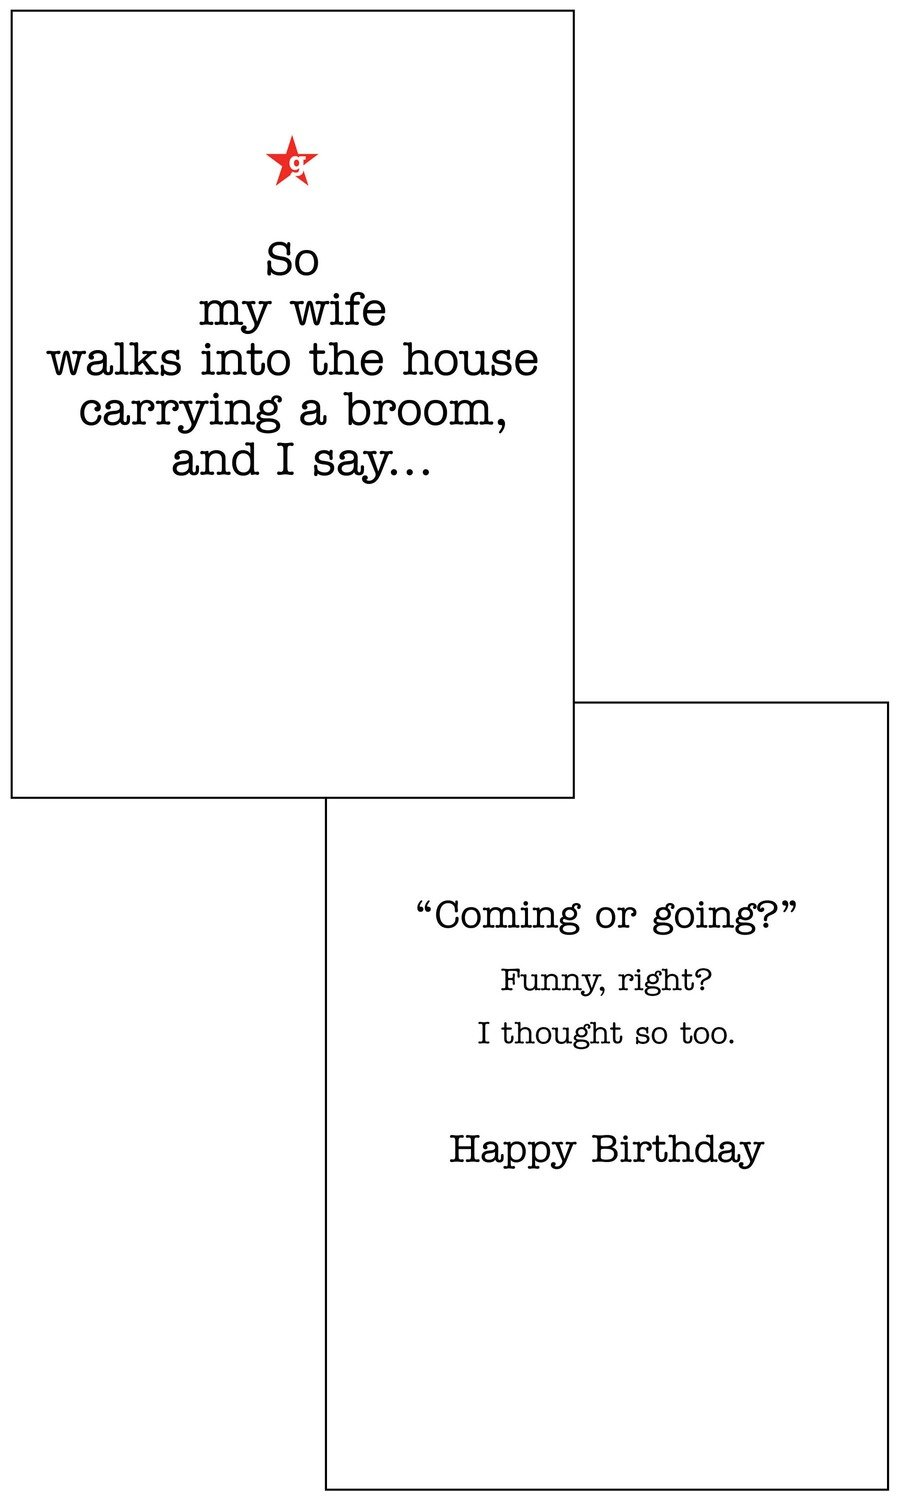 CFG042  Birthday Card